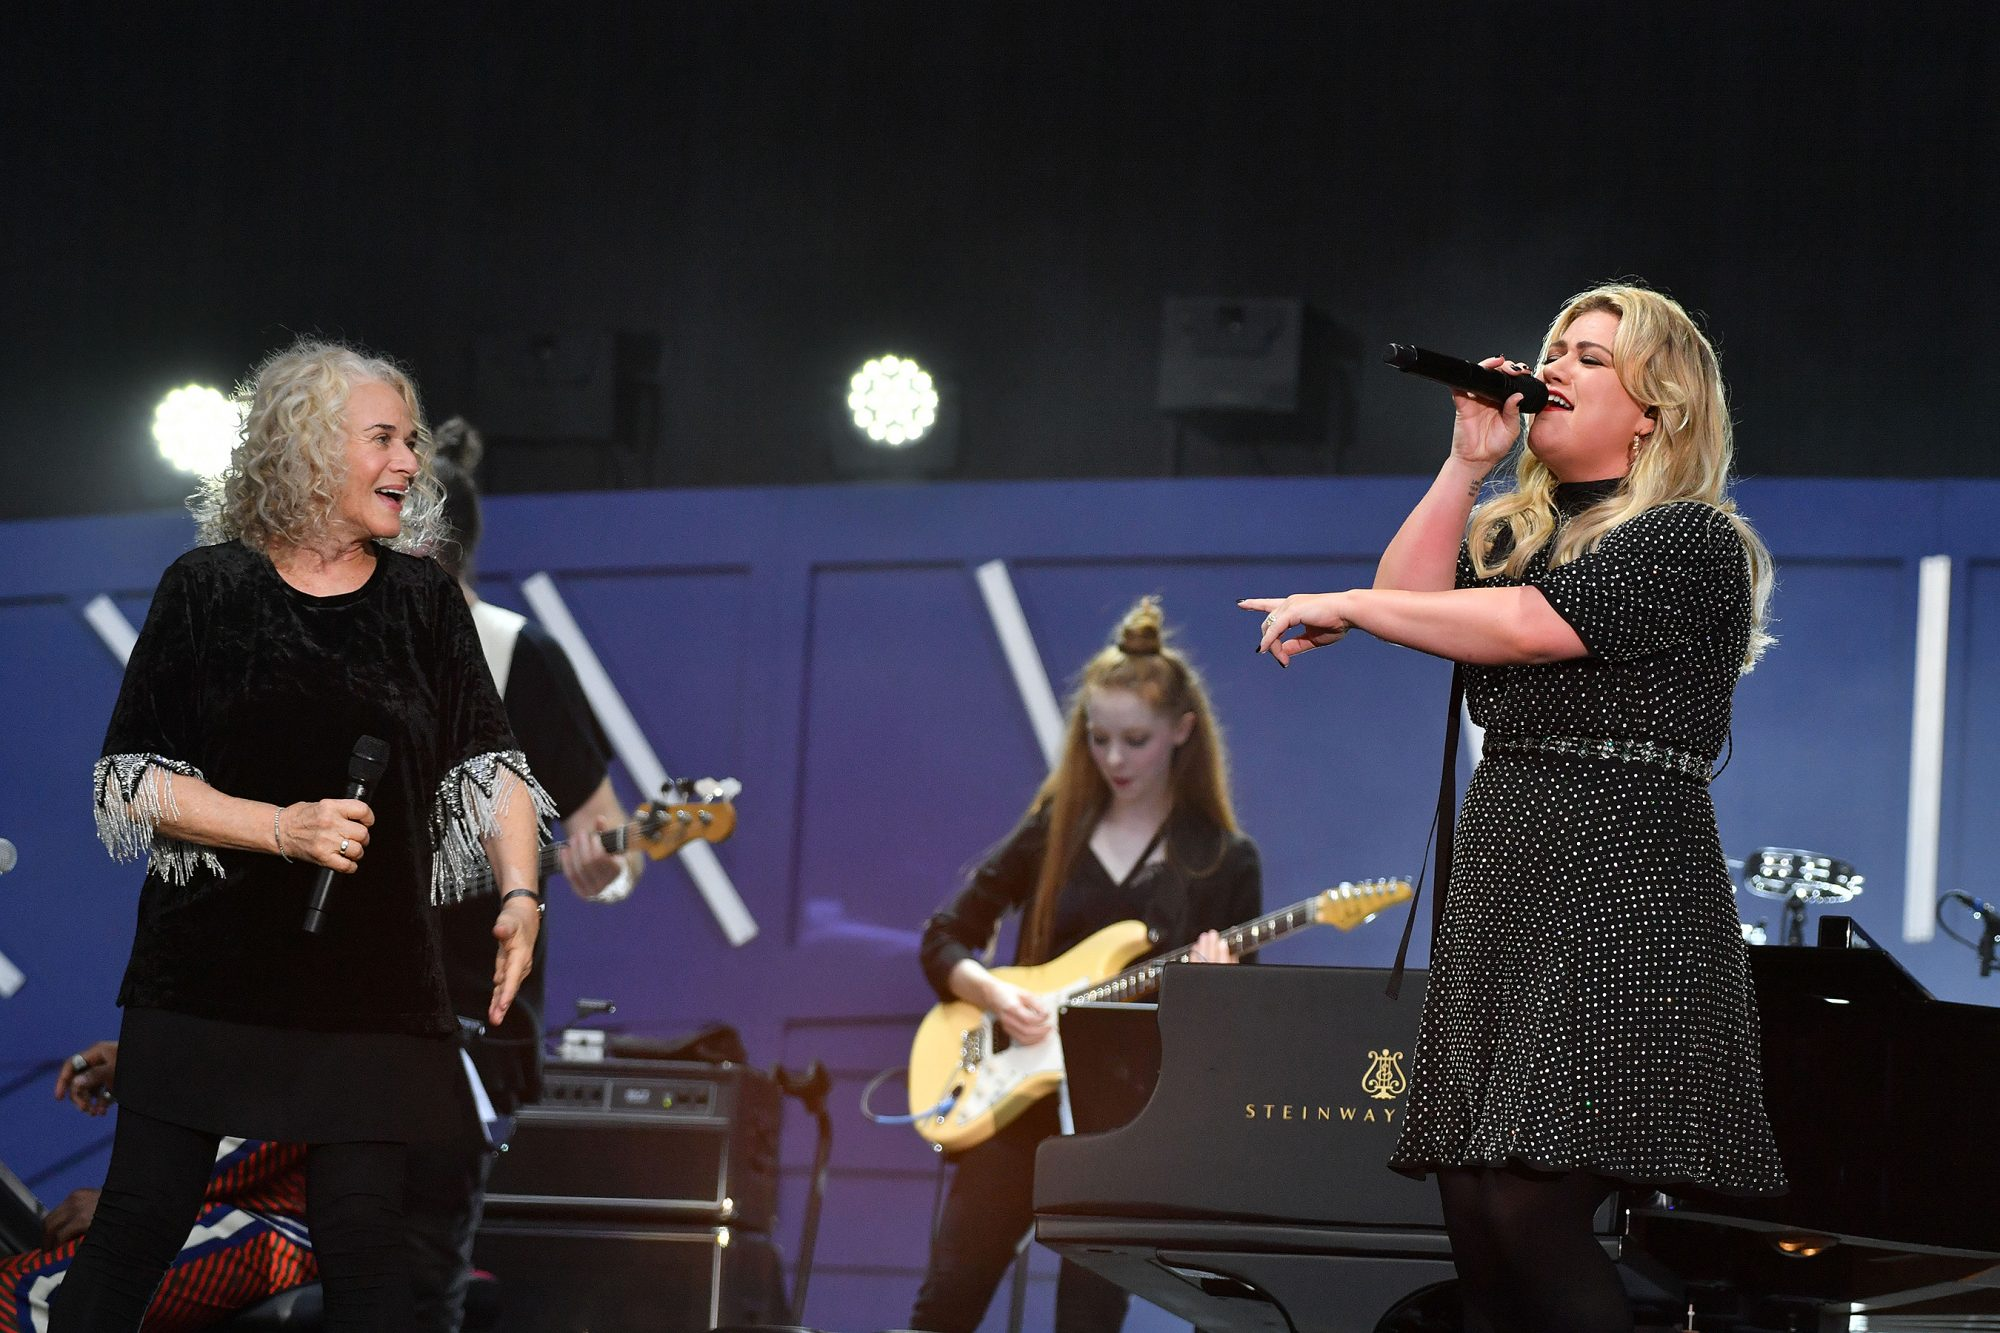 Carole King and Kelly Clarkson